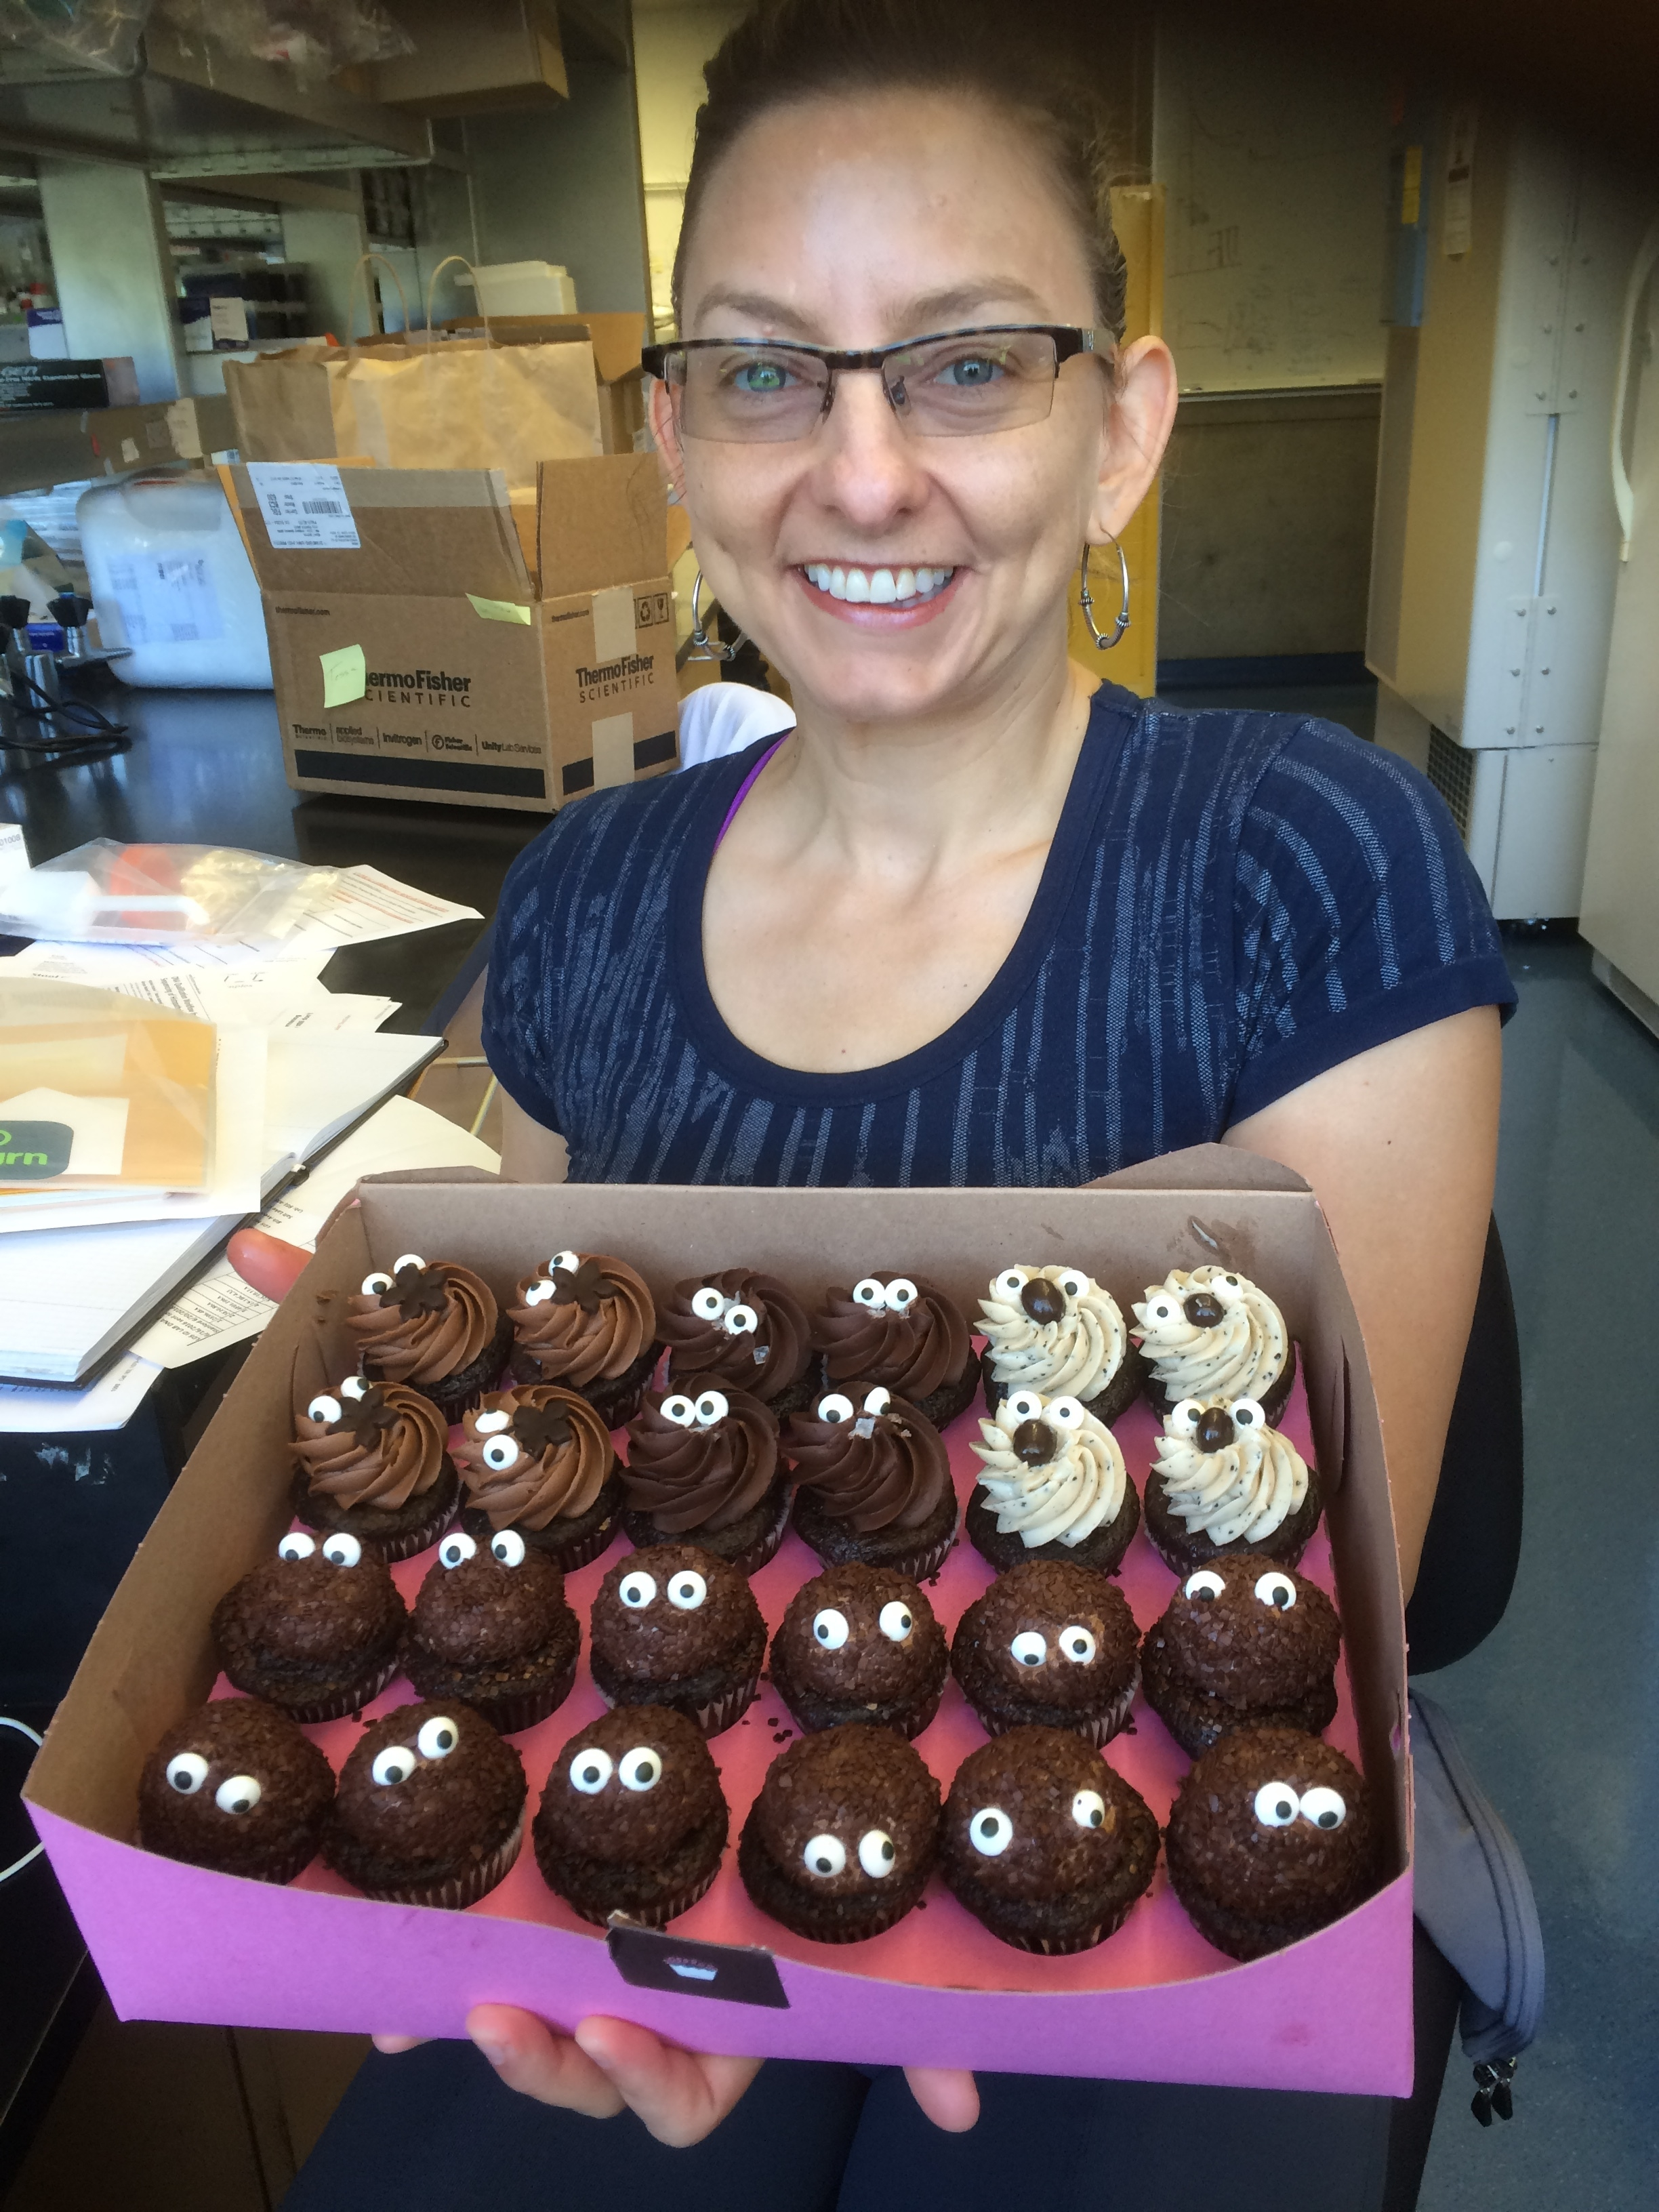 Tessa thanking our stool collection nurses with poop emoji themed cupcakes!